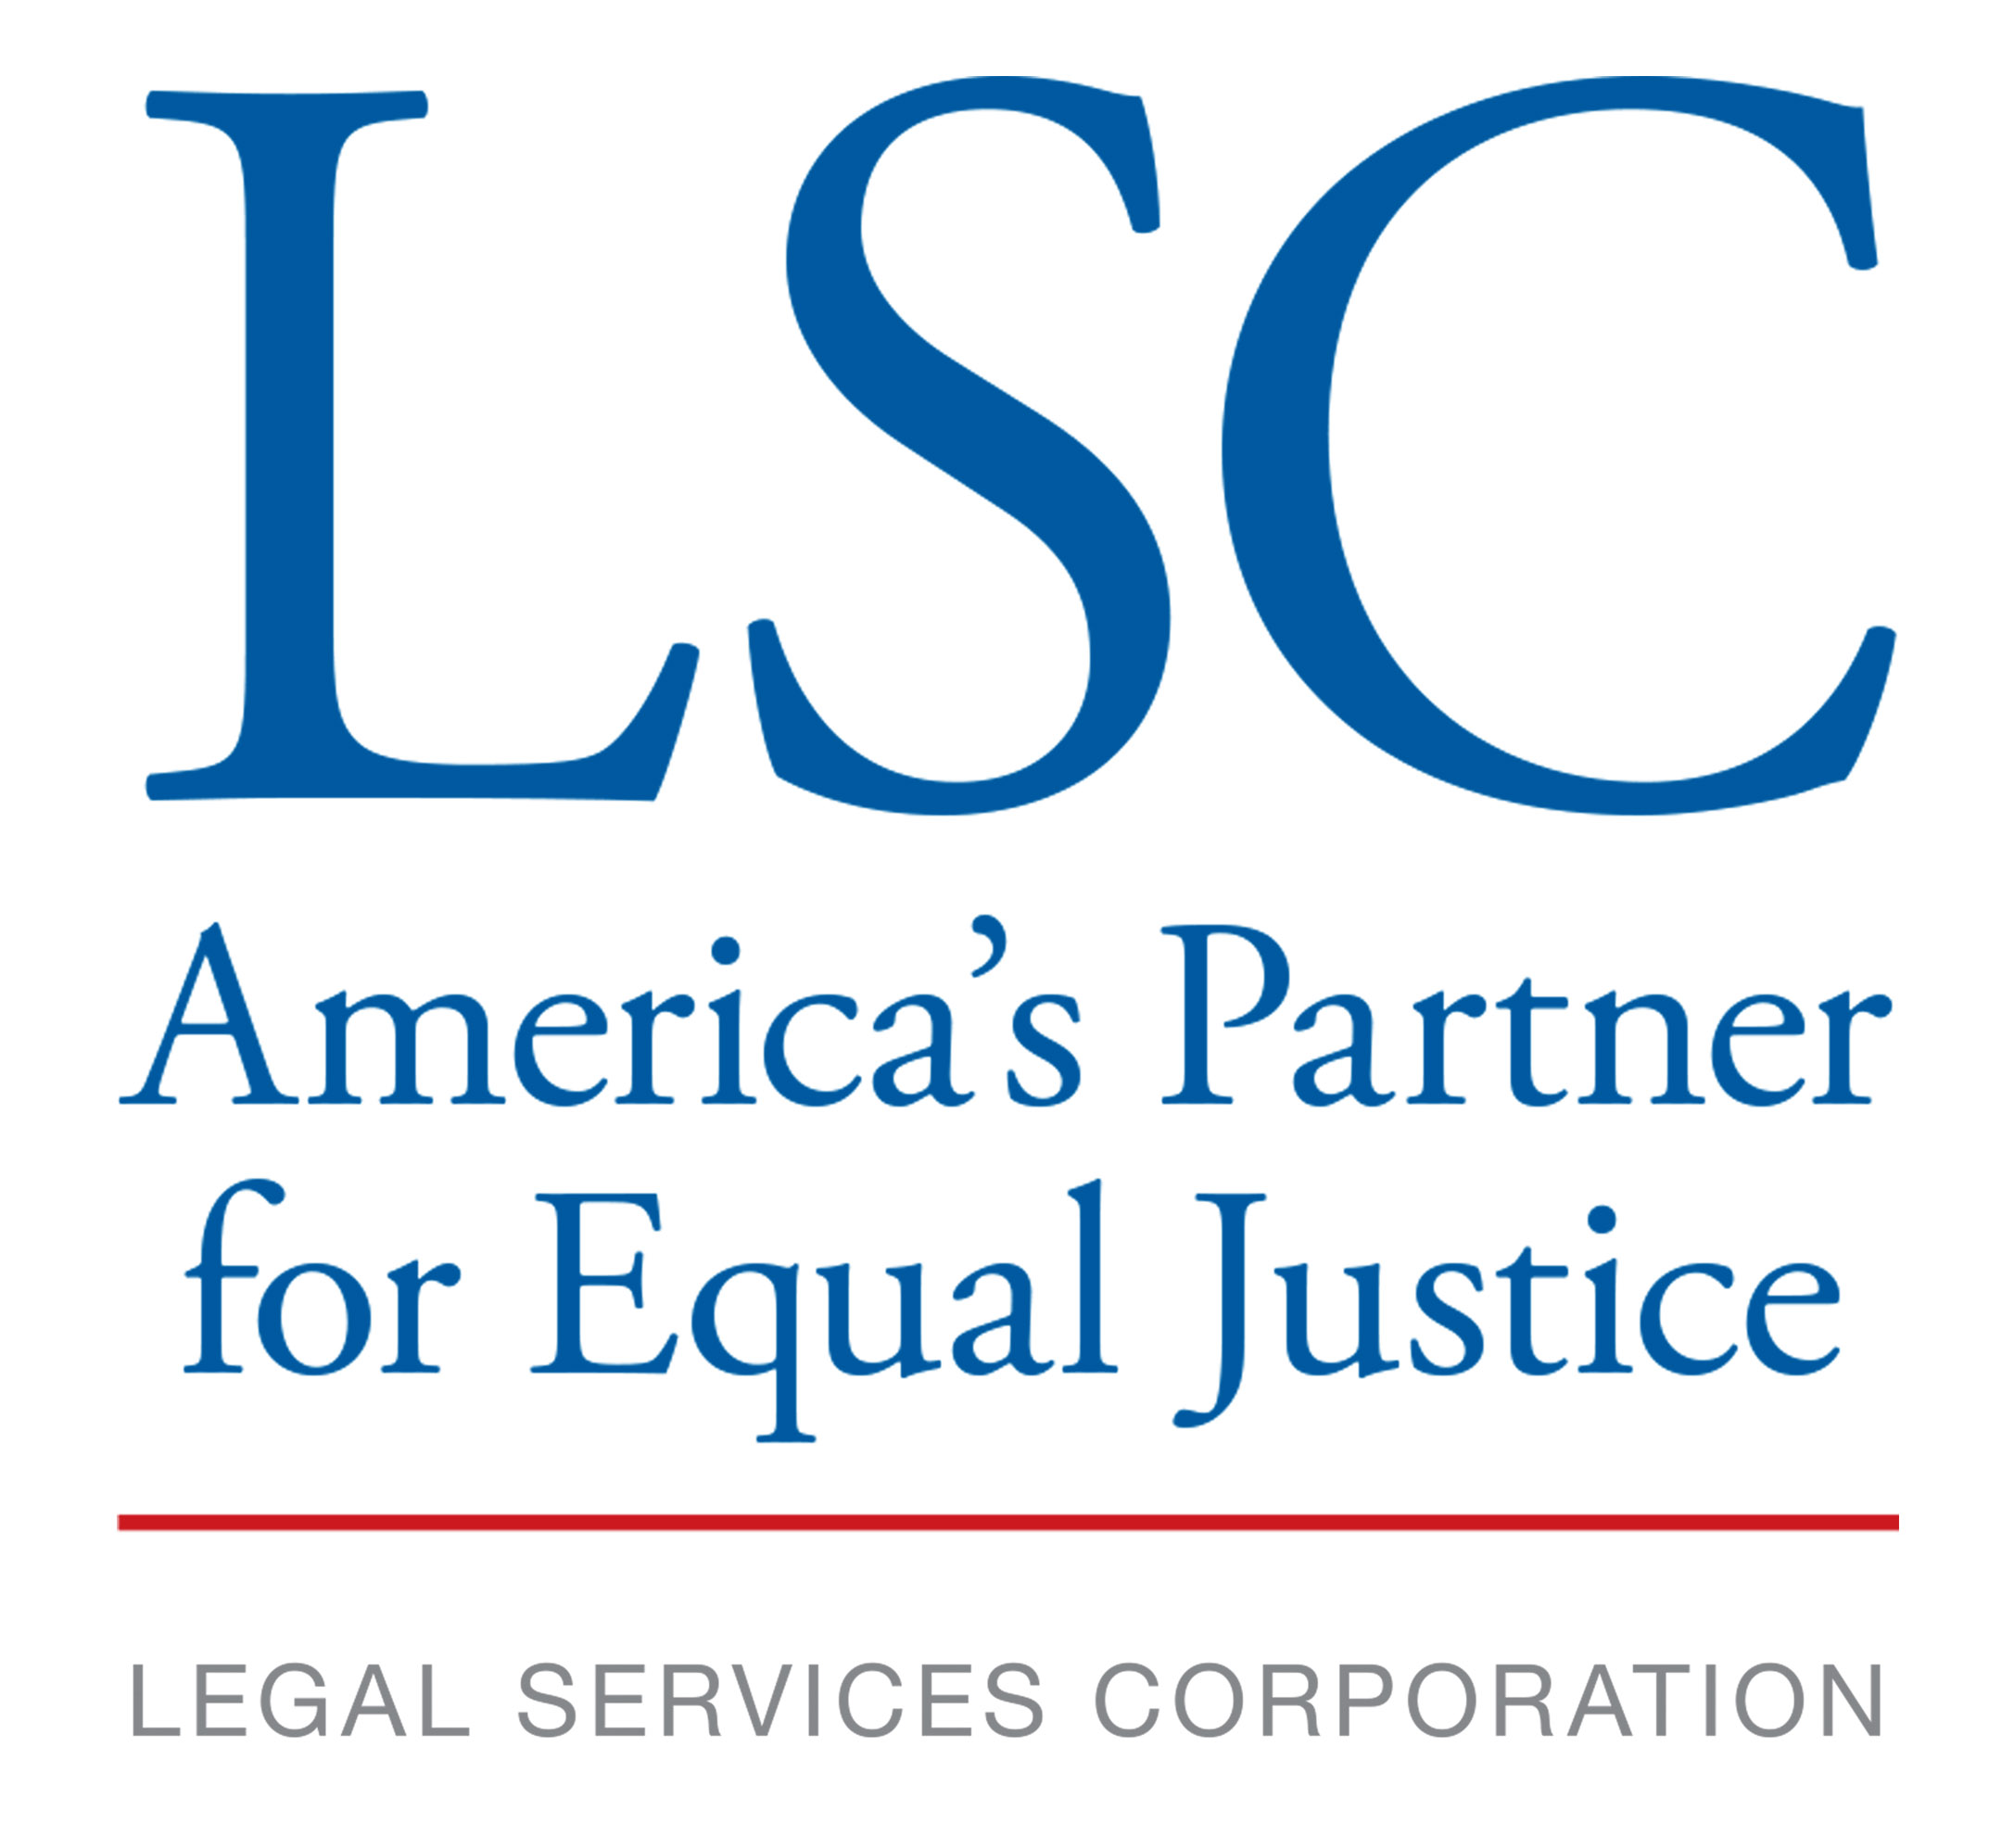 Lsc Media Assets | Lsc - Legal Services Corporation: America's